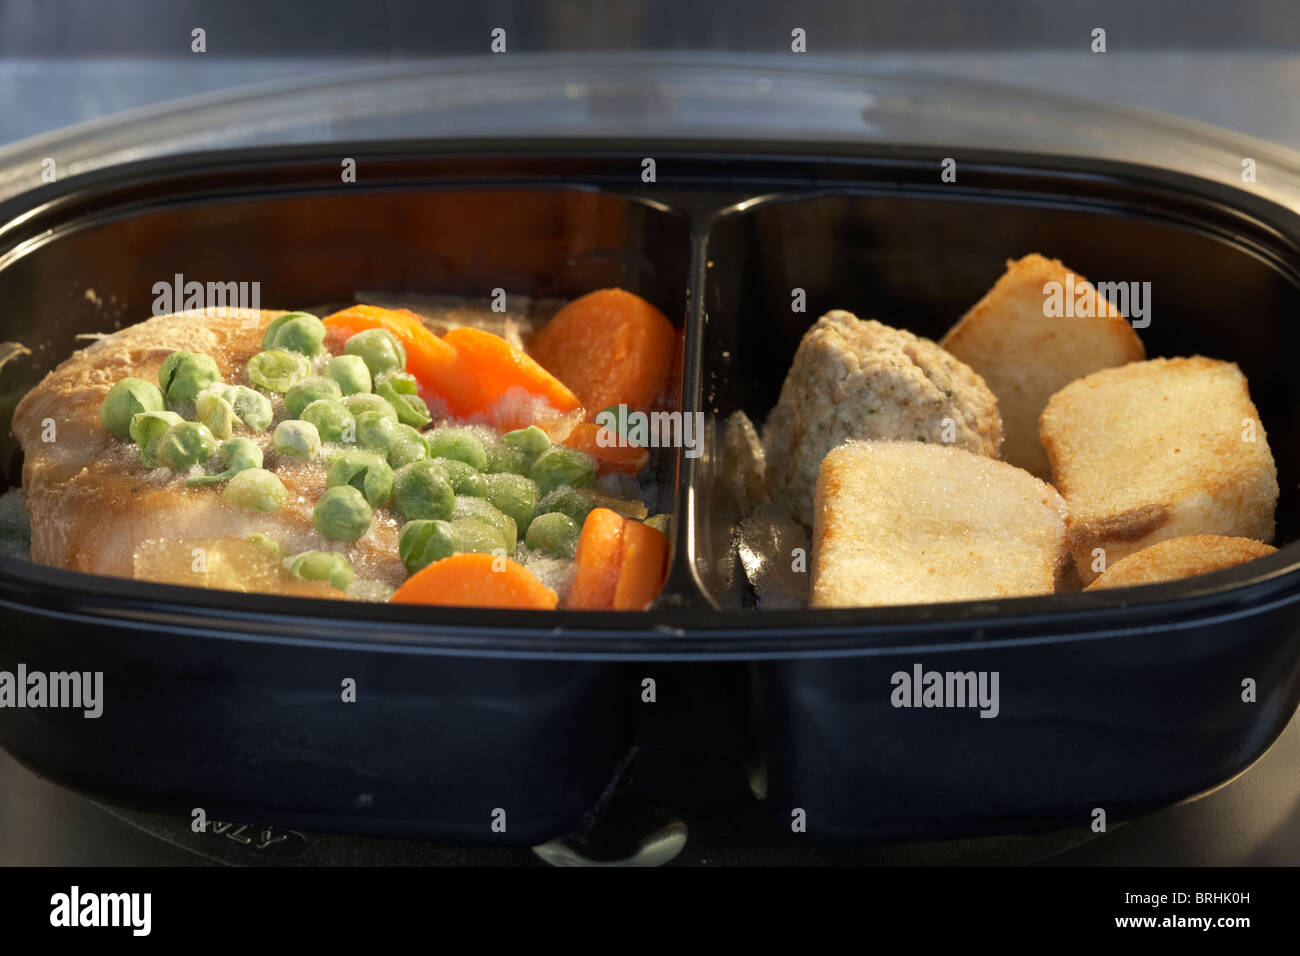 Frozen Microwave Chicken Dinner Meal For One In A